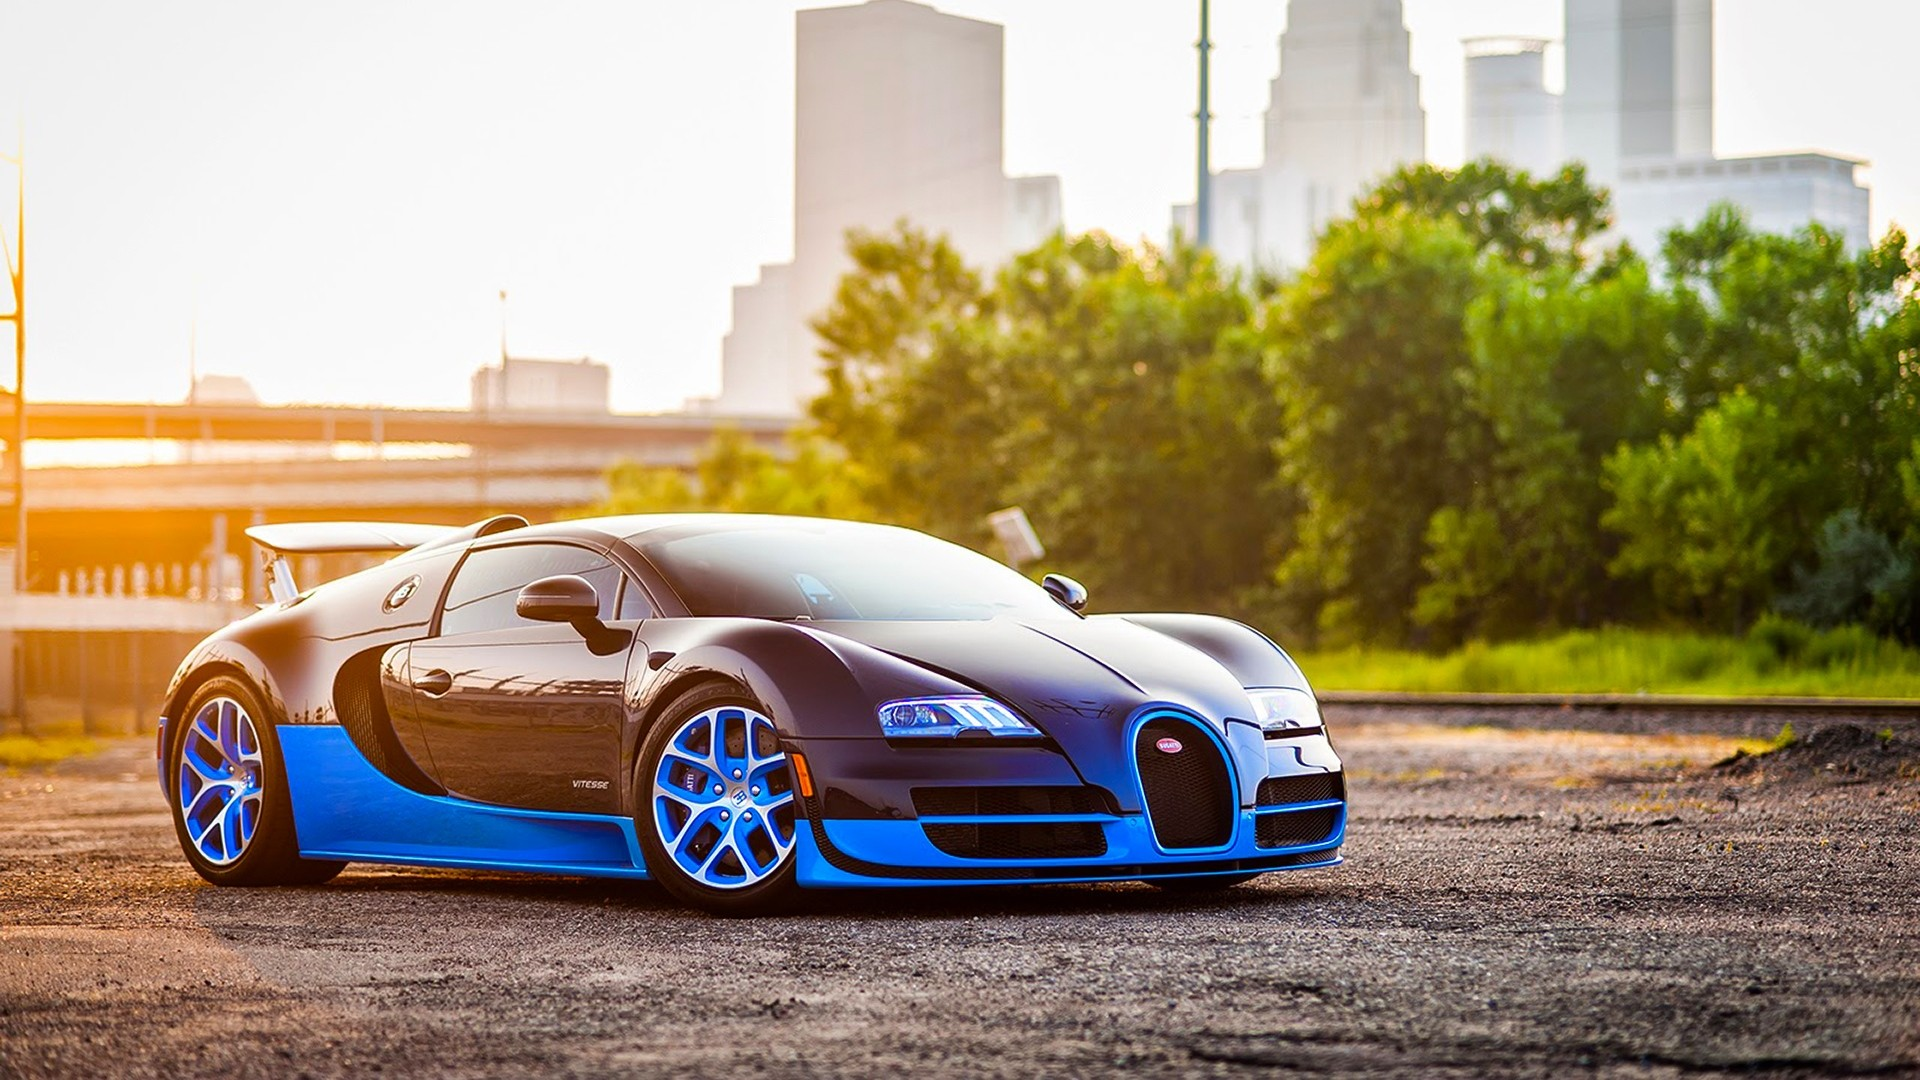 Bugatti Veyron Hd Wallpaper